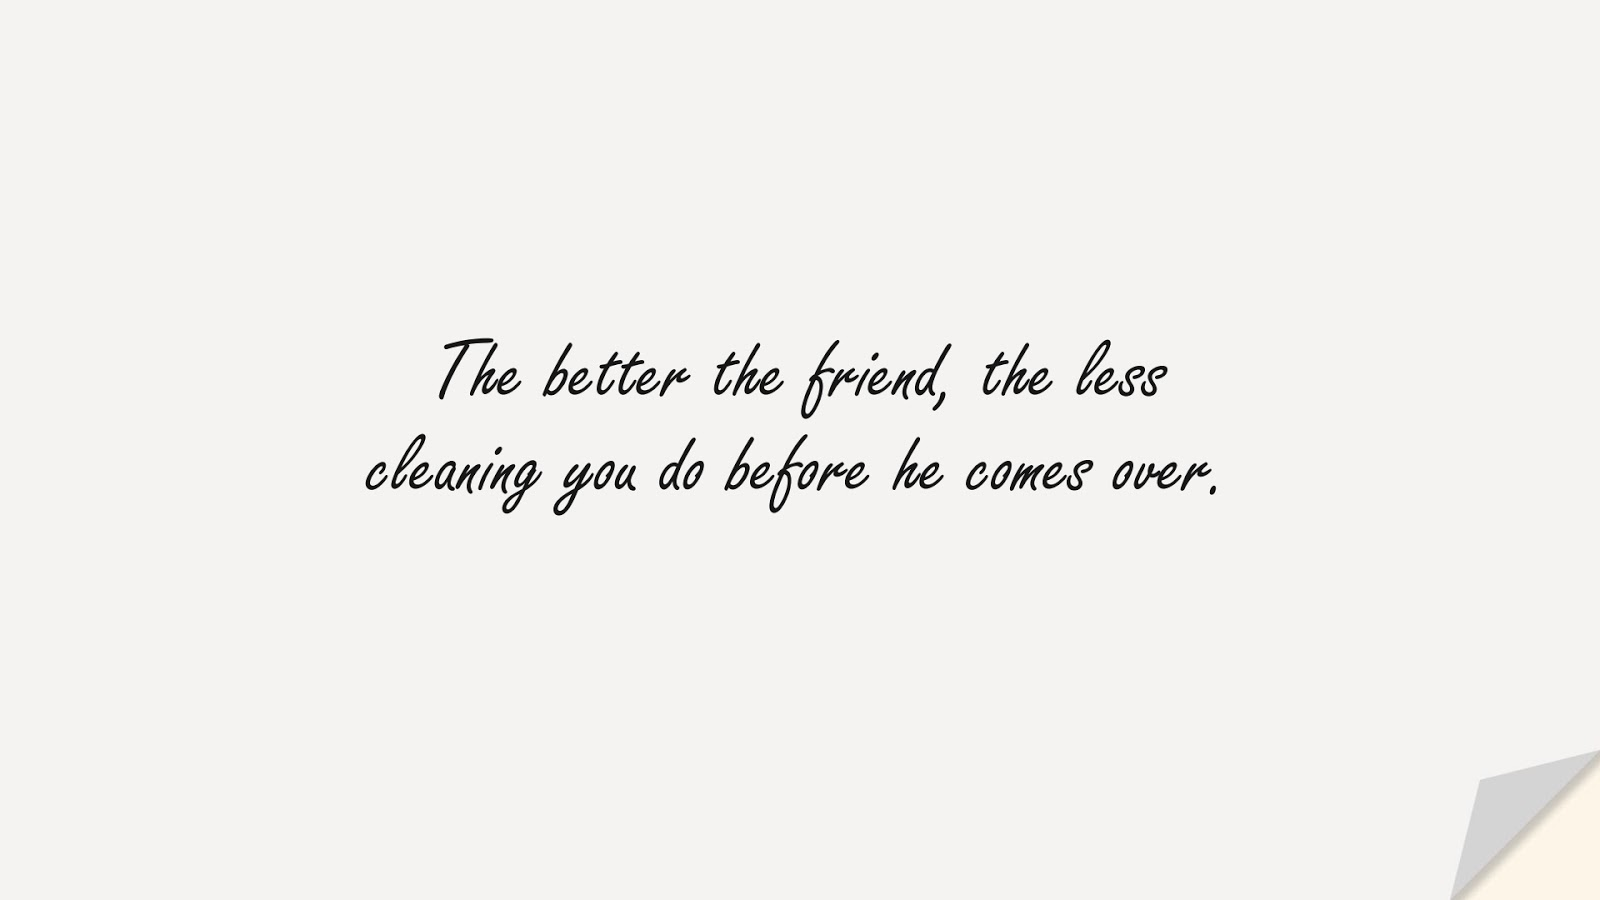 The better the friend, the less cleaning you do before he comes over.FALSE